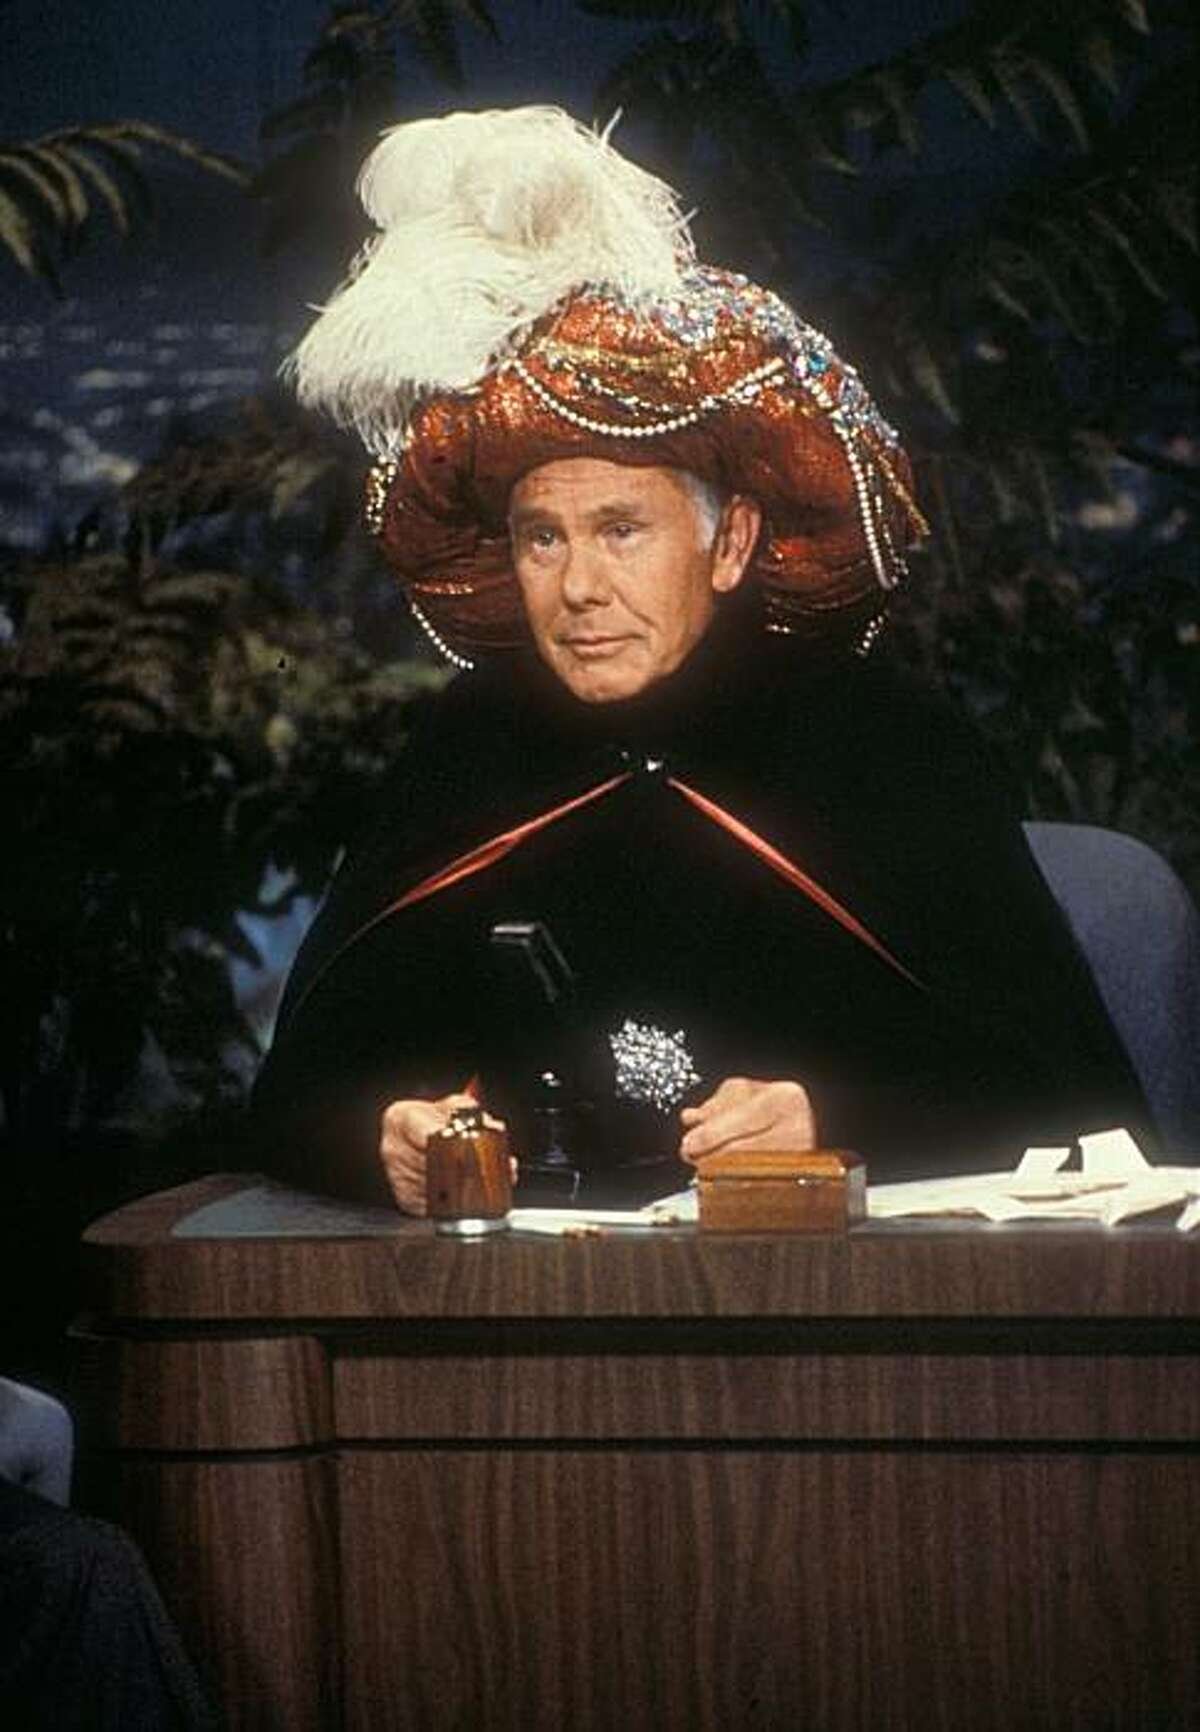 """In this undated photo provided by NBC, Johnny Carson begins an episode of the """"Tonight Show"""" as """"Carnac, The Magnificent!"""""""